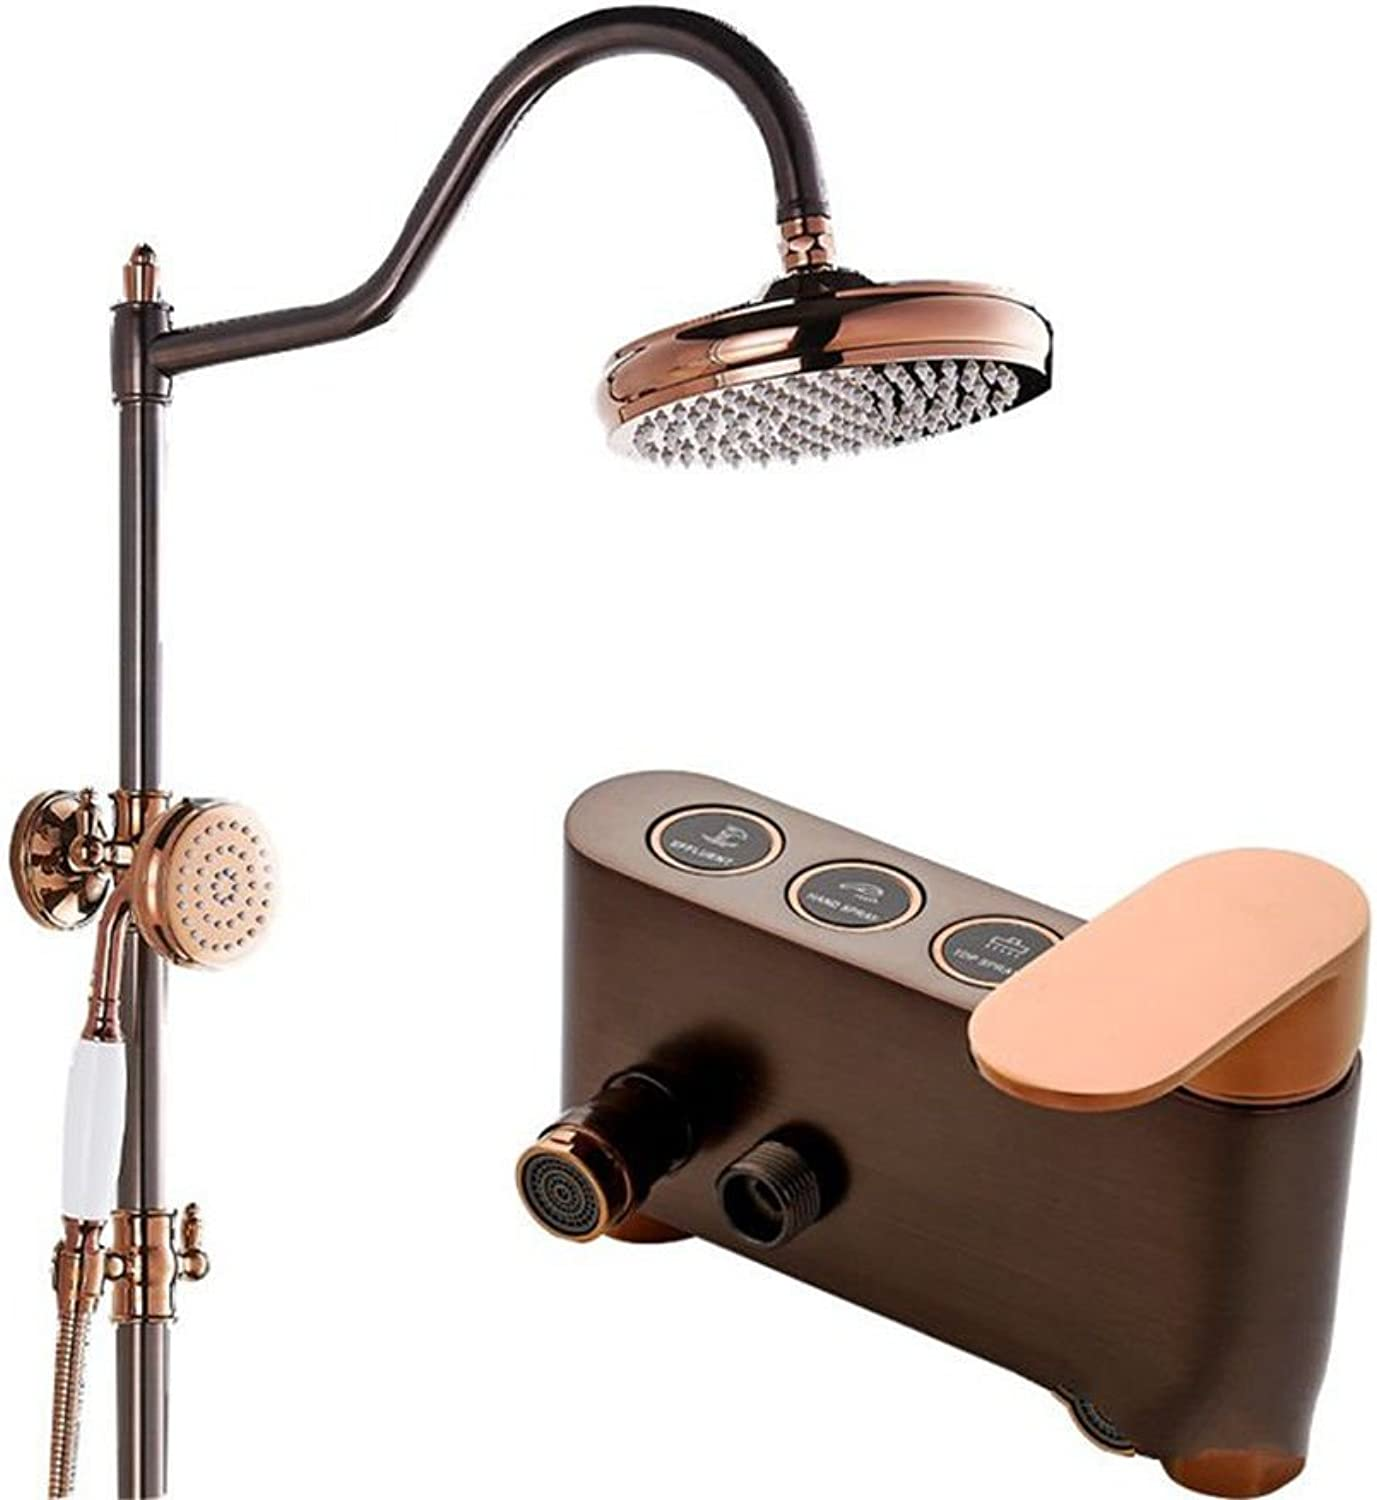 ETERNAL QUALITY Bathroom Sink Basin Tap Brass Mixer Tap Washroom Mixer Faucet All copper antique bathroom shower faucet set touch-tone pink gold handheld shower cold wate